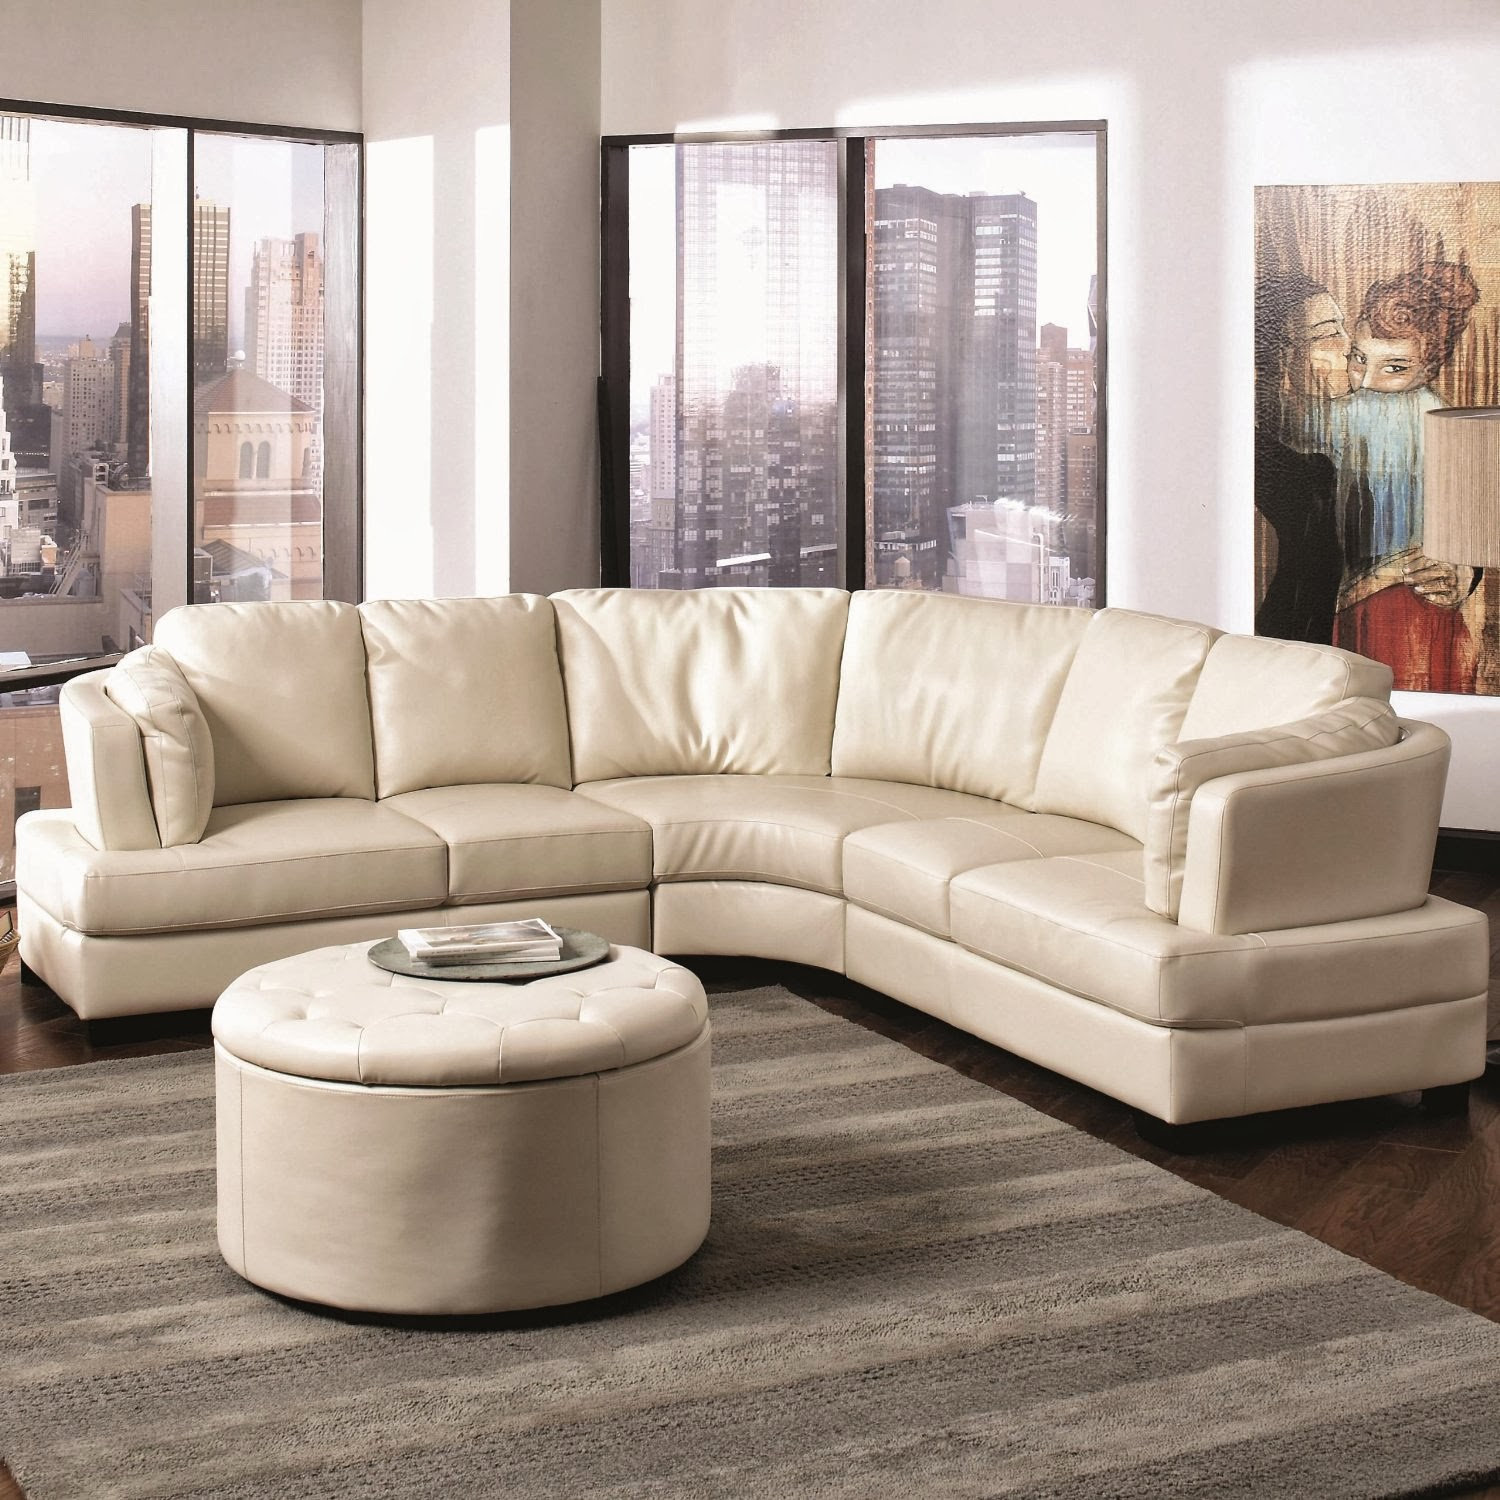 Online Sofas: Buy Curved Sofa Online: September 2013